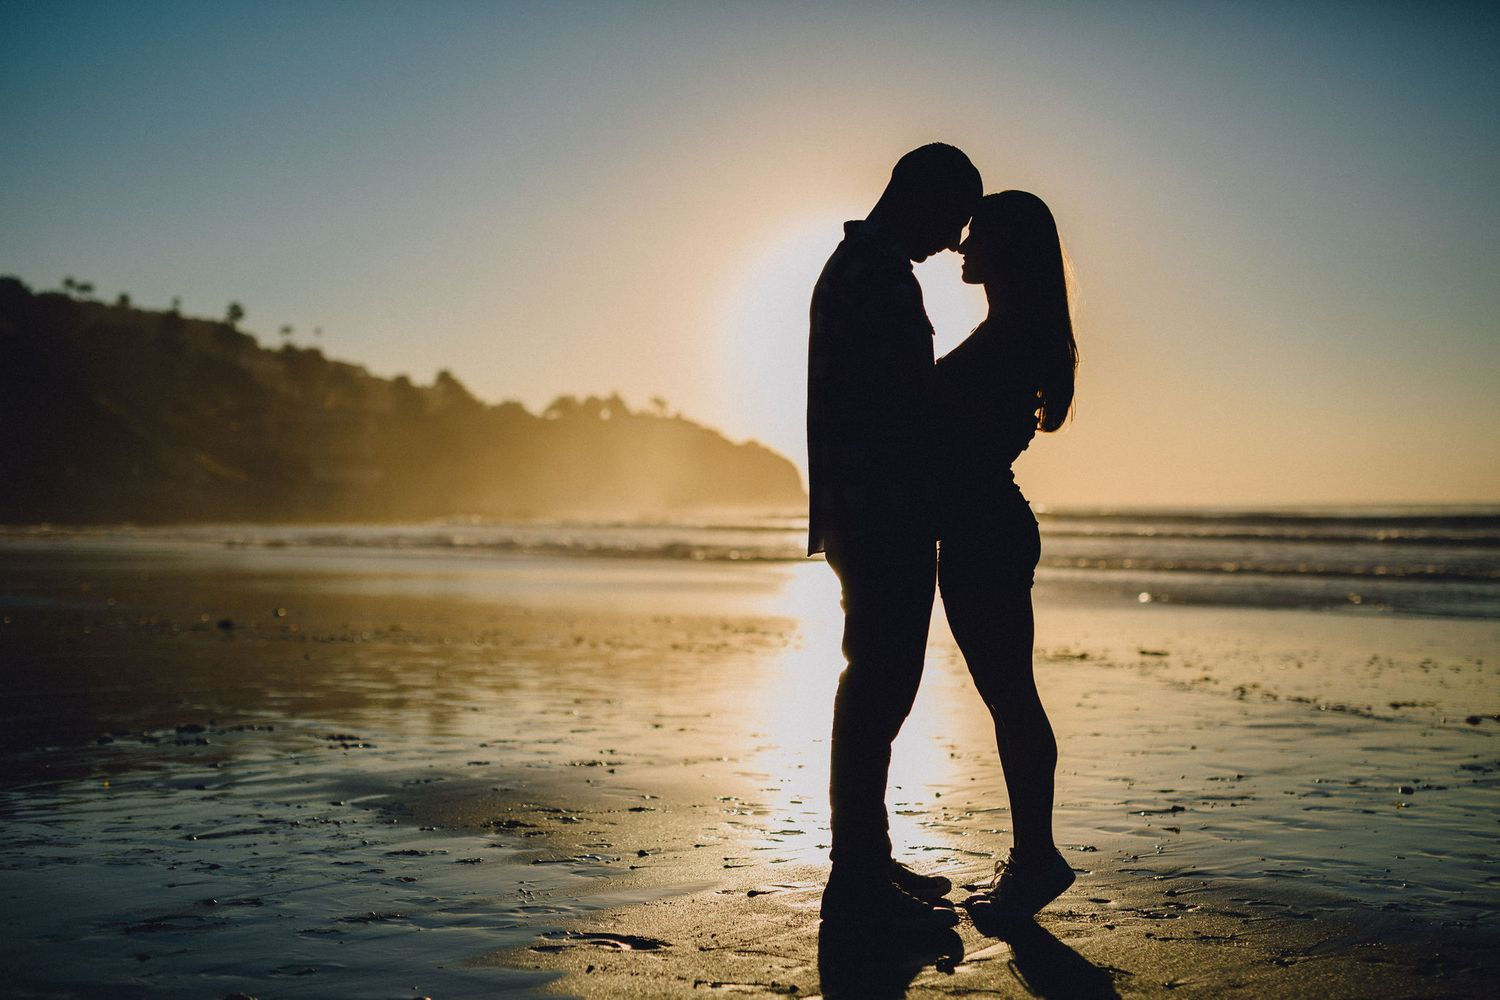 silhouette engagement photo at beach during sunset